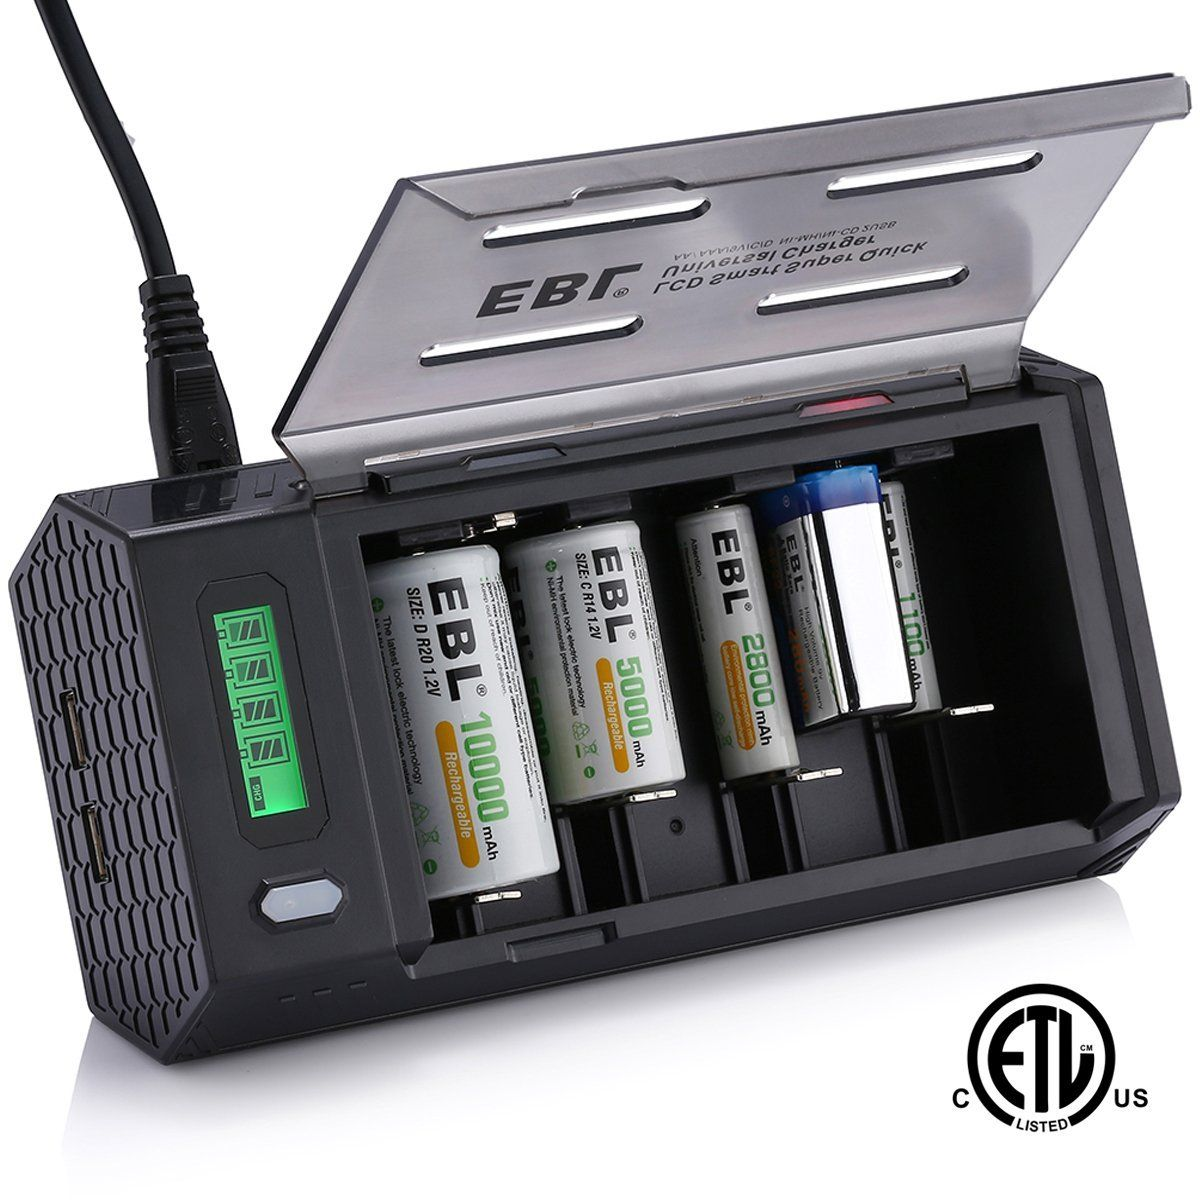 5 Ebl Smart Lcd Battery Charger Rechargeable Batteries Battery Charger Universal Battery Charger